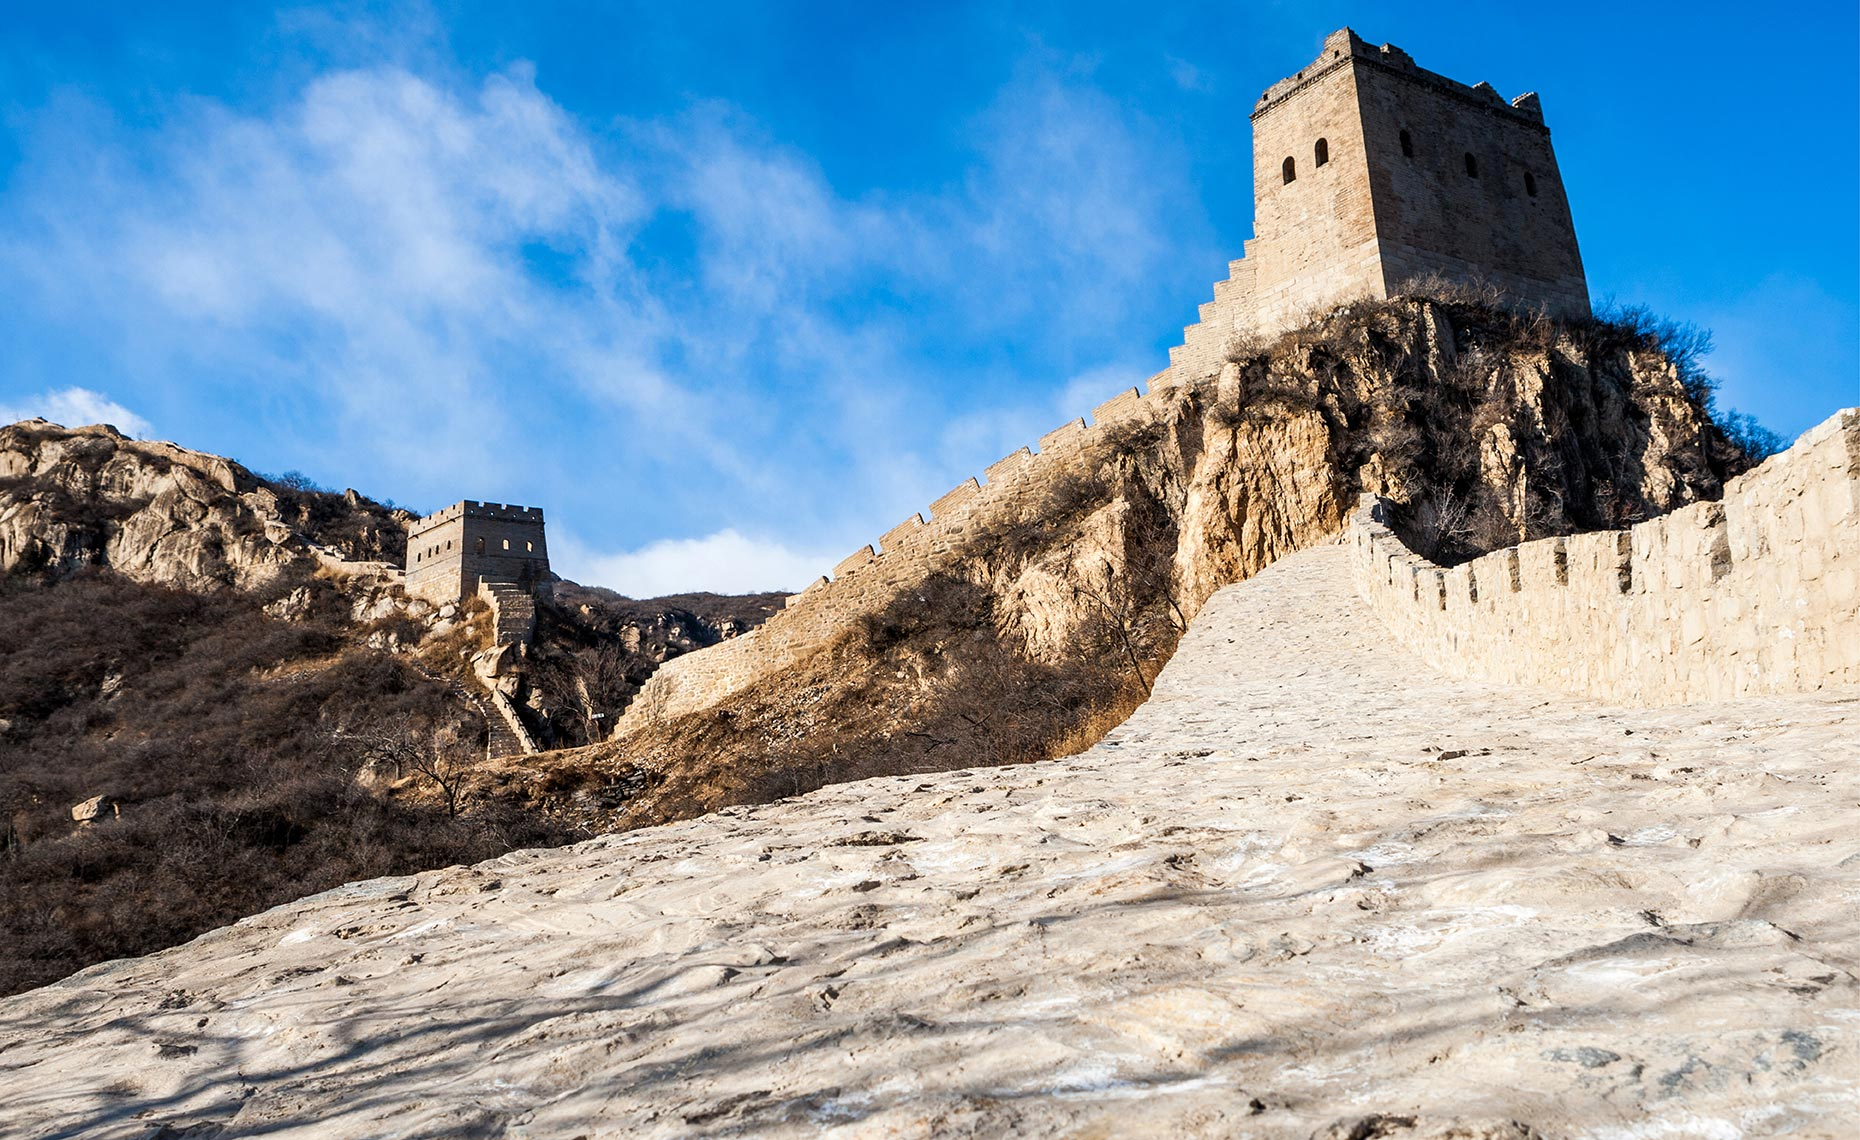 73_Beijing_China_The_Great_Wall_Environment_Landscape_Chris_Wellhausen_Photography.JPG